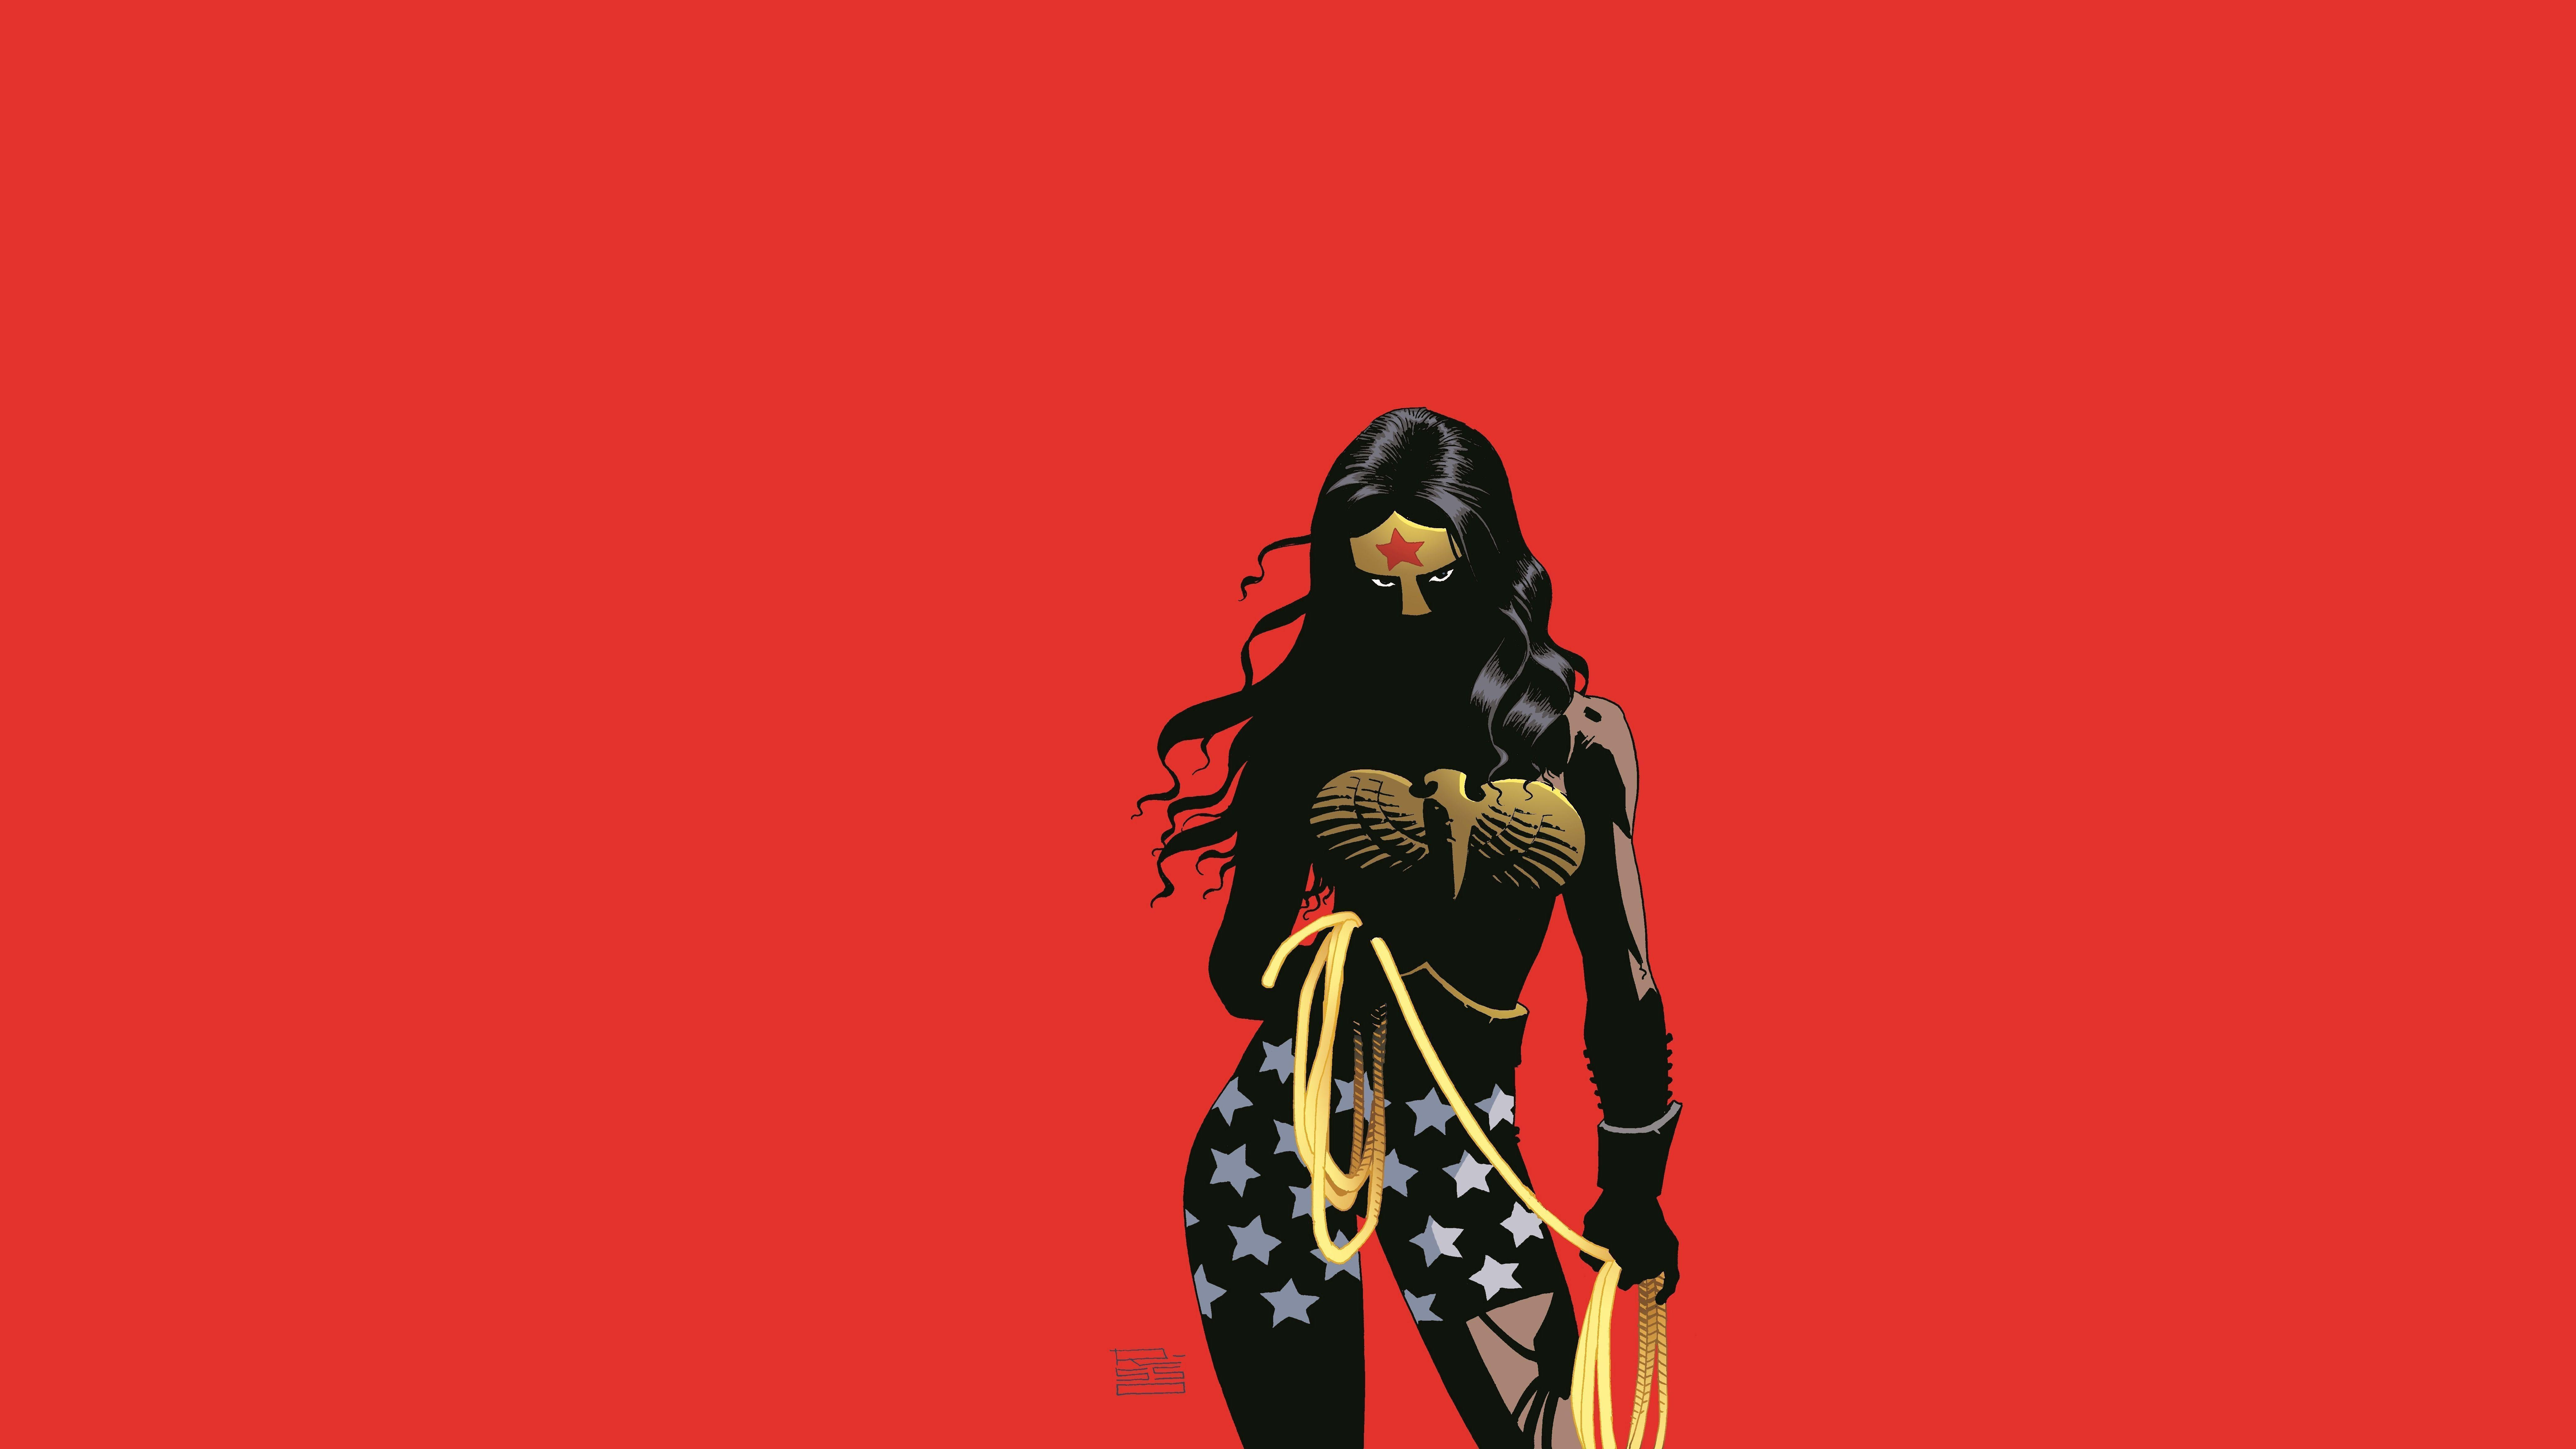 Wonder Woman Computer Wallpapers, Desktop Backgrounds | 8350x4697 ...